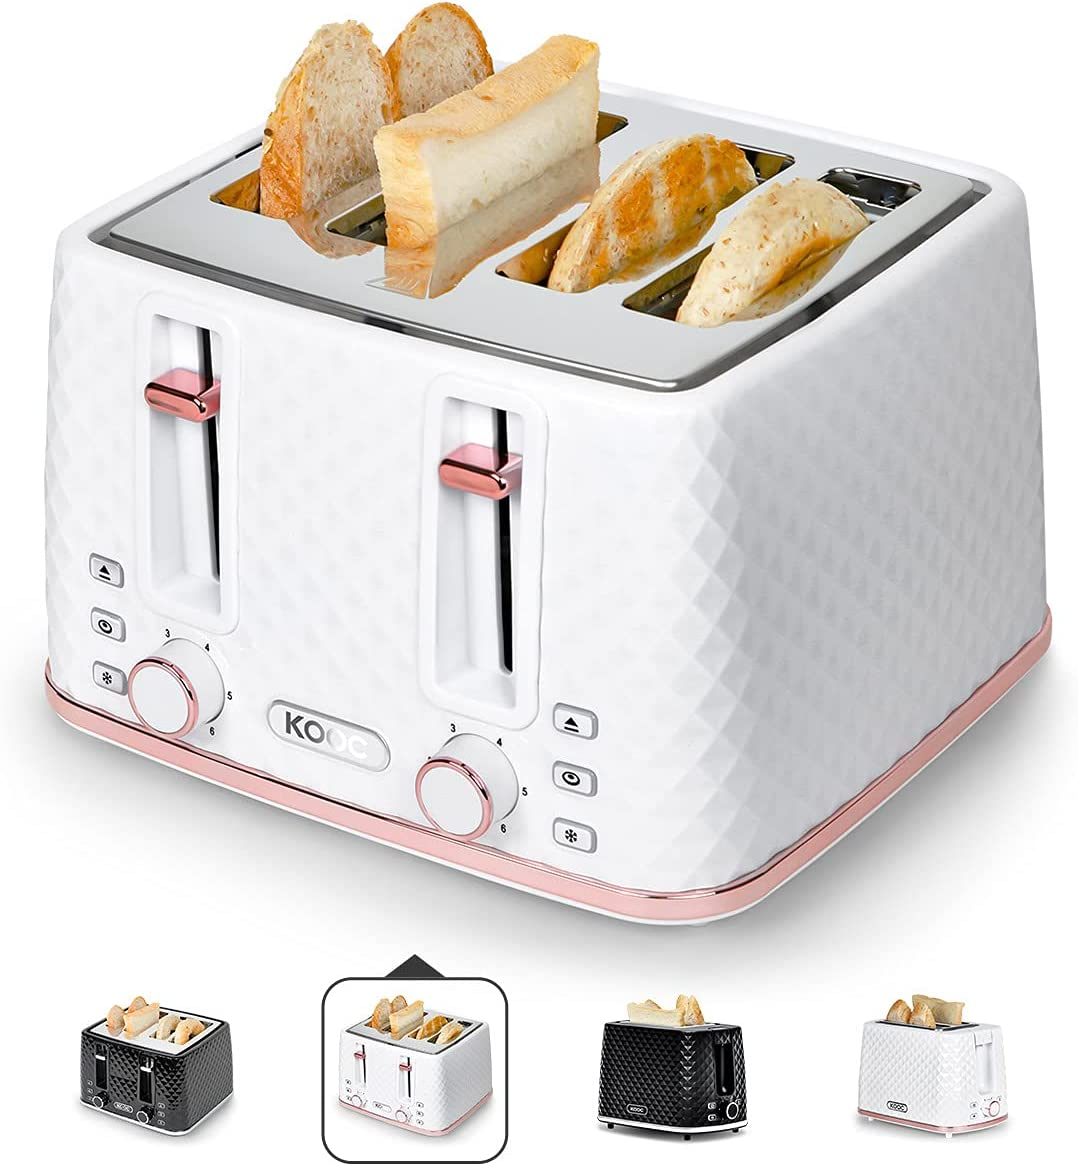 [NEW LAUNCH] KOOC Large Toaster 4 Slice, 1.5-inch Extra-wide Slot for Evenly Toast, 6 Shade Settings, Bagel/Defrost/Cancel in 1, Stainless Steel Inner, High Lift Lever, Removable Crumb Tray, White